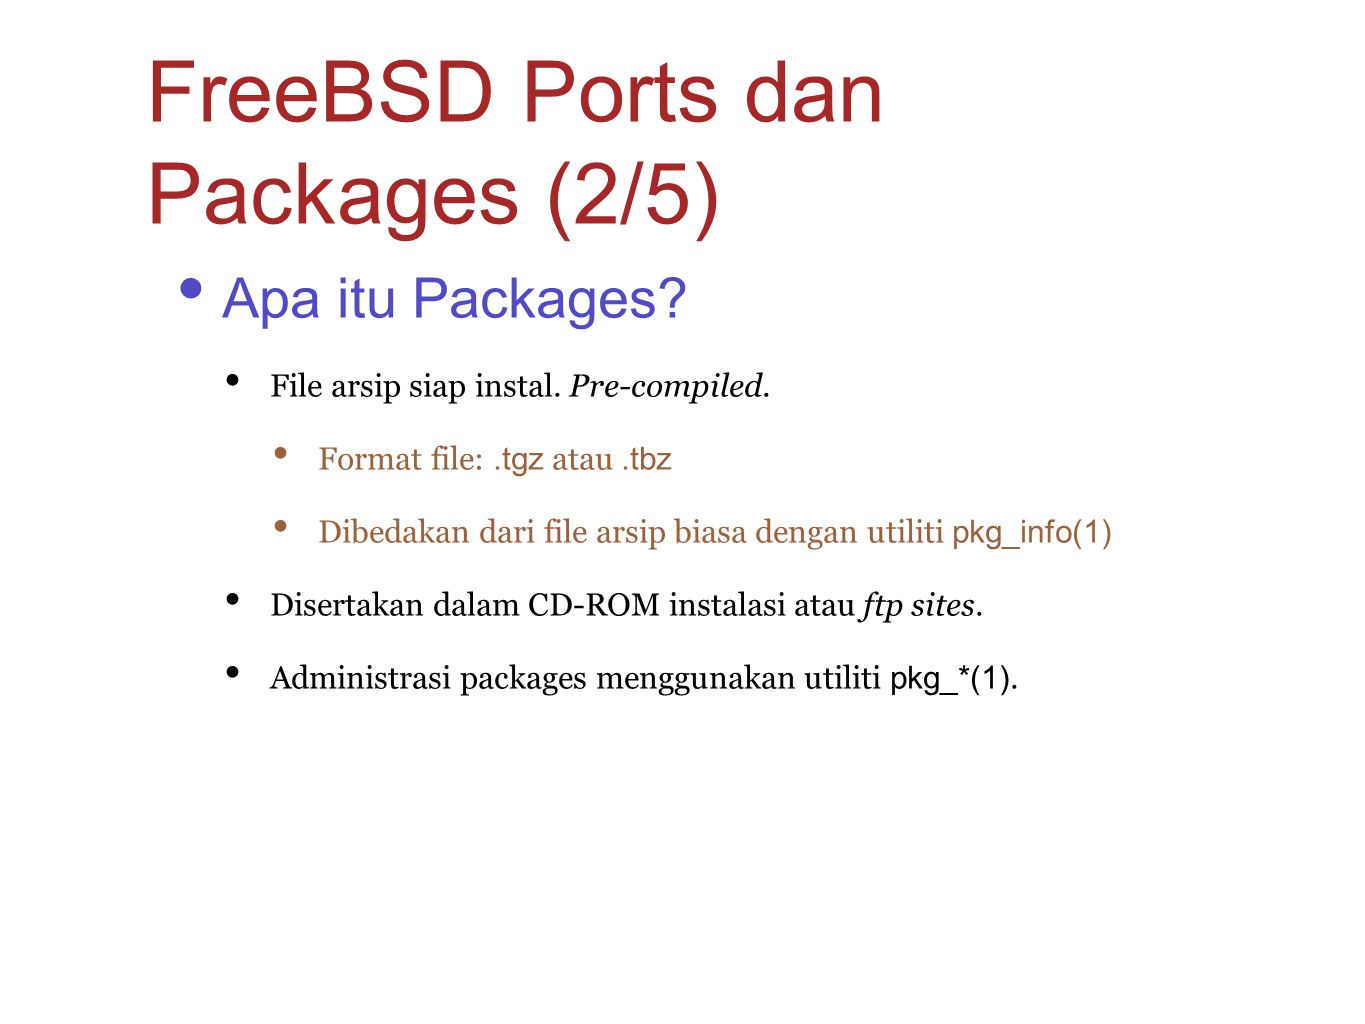 FreeBSD Ports dan Packages (2/5)